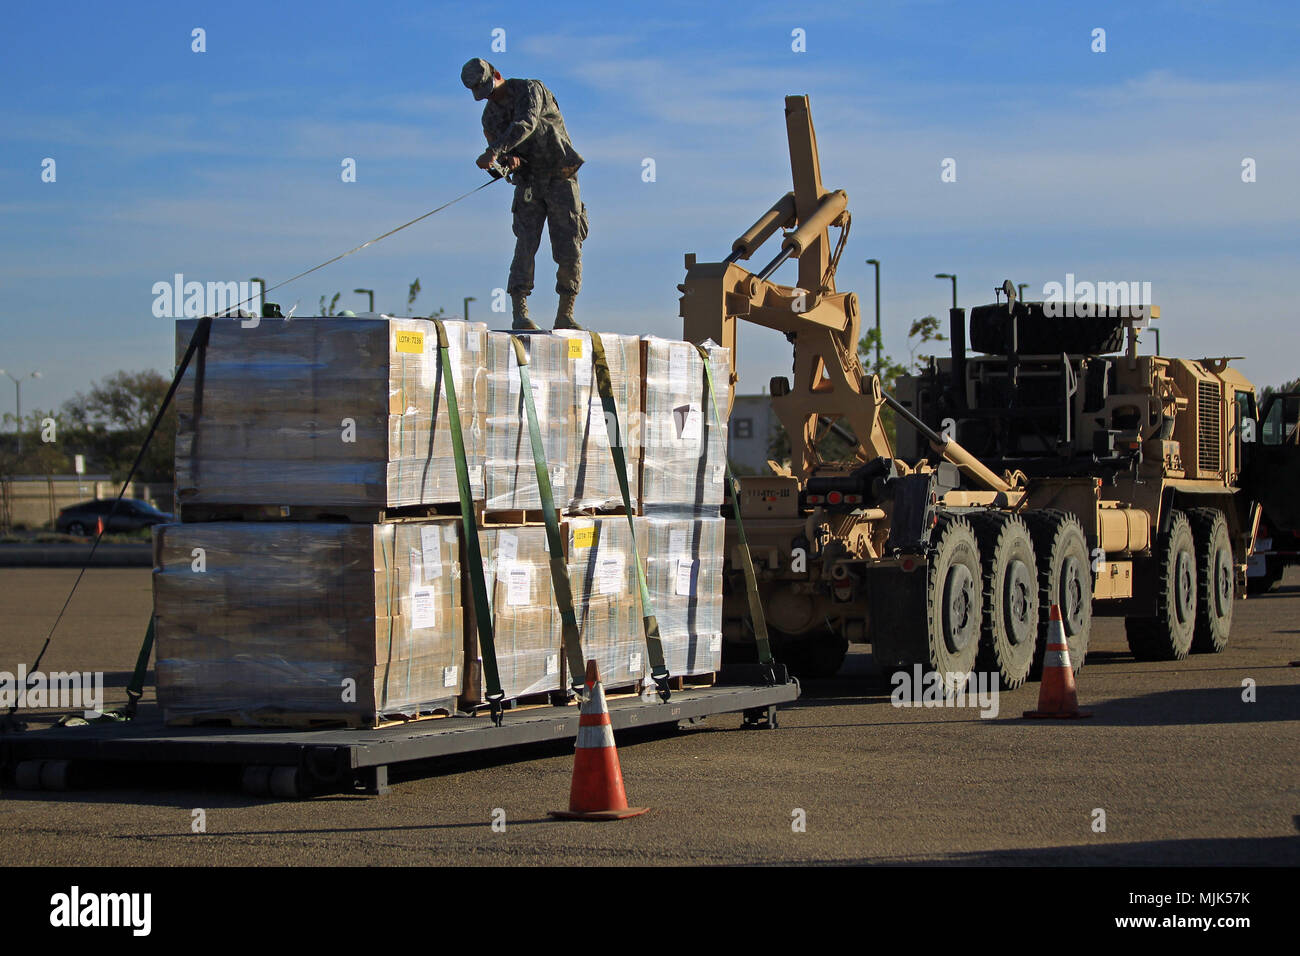 U.S. Army National Guard Private 1st Class Kane Coronado of the 756th Transportation Company in Lancaster, California, secures pallets of food onto a palletized loading system Thurs., Dec. 7, 2017, at Joint Forces Training Base Los Alamitos, California. The base is being used as a multiagency staging area in support of wildfire response efforts in Southern California as fires continue to burn in the region. (U.S. Air National Guard photo by Senior Airman Crystal Housman) Stock Photo